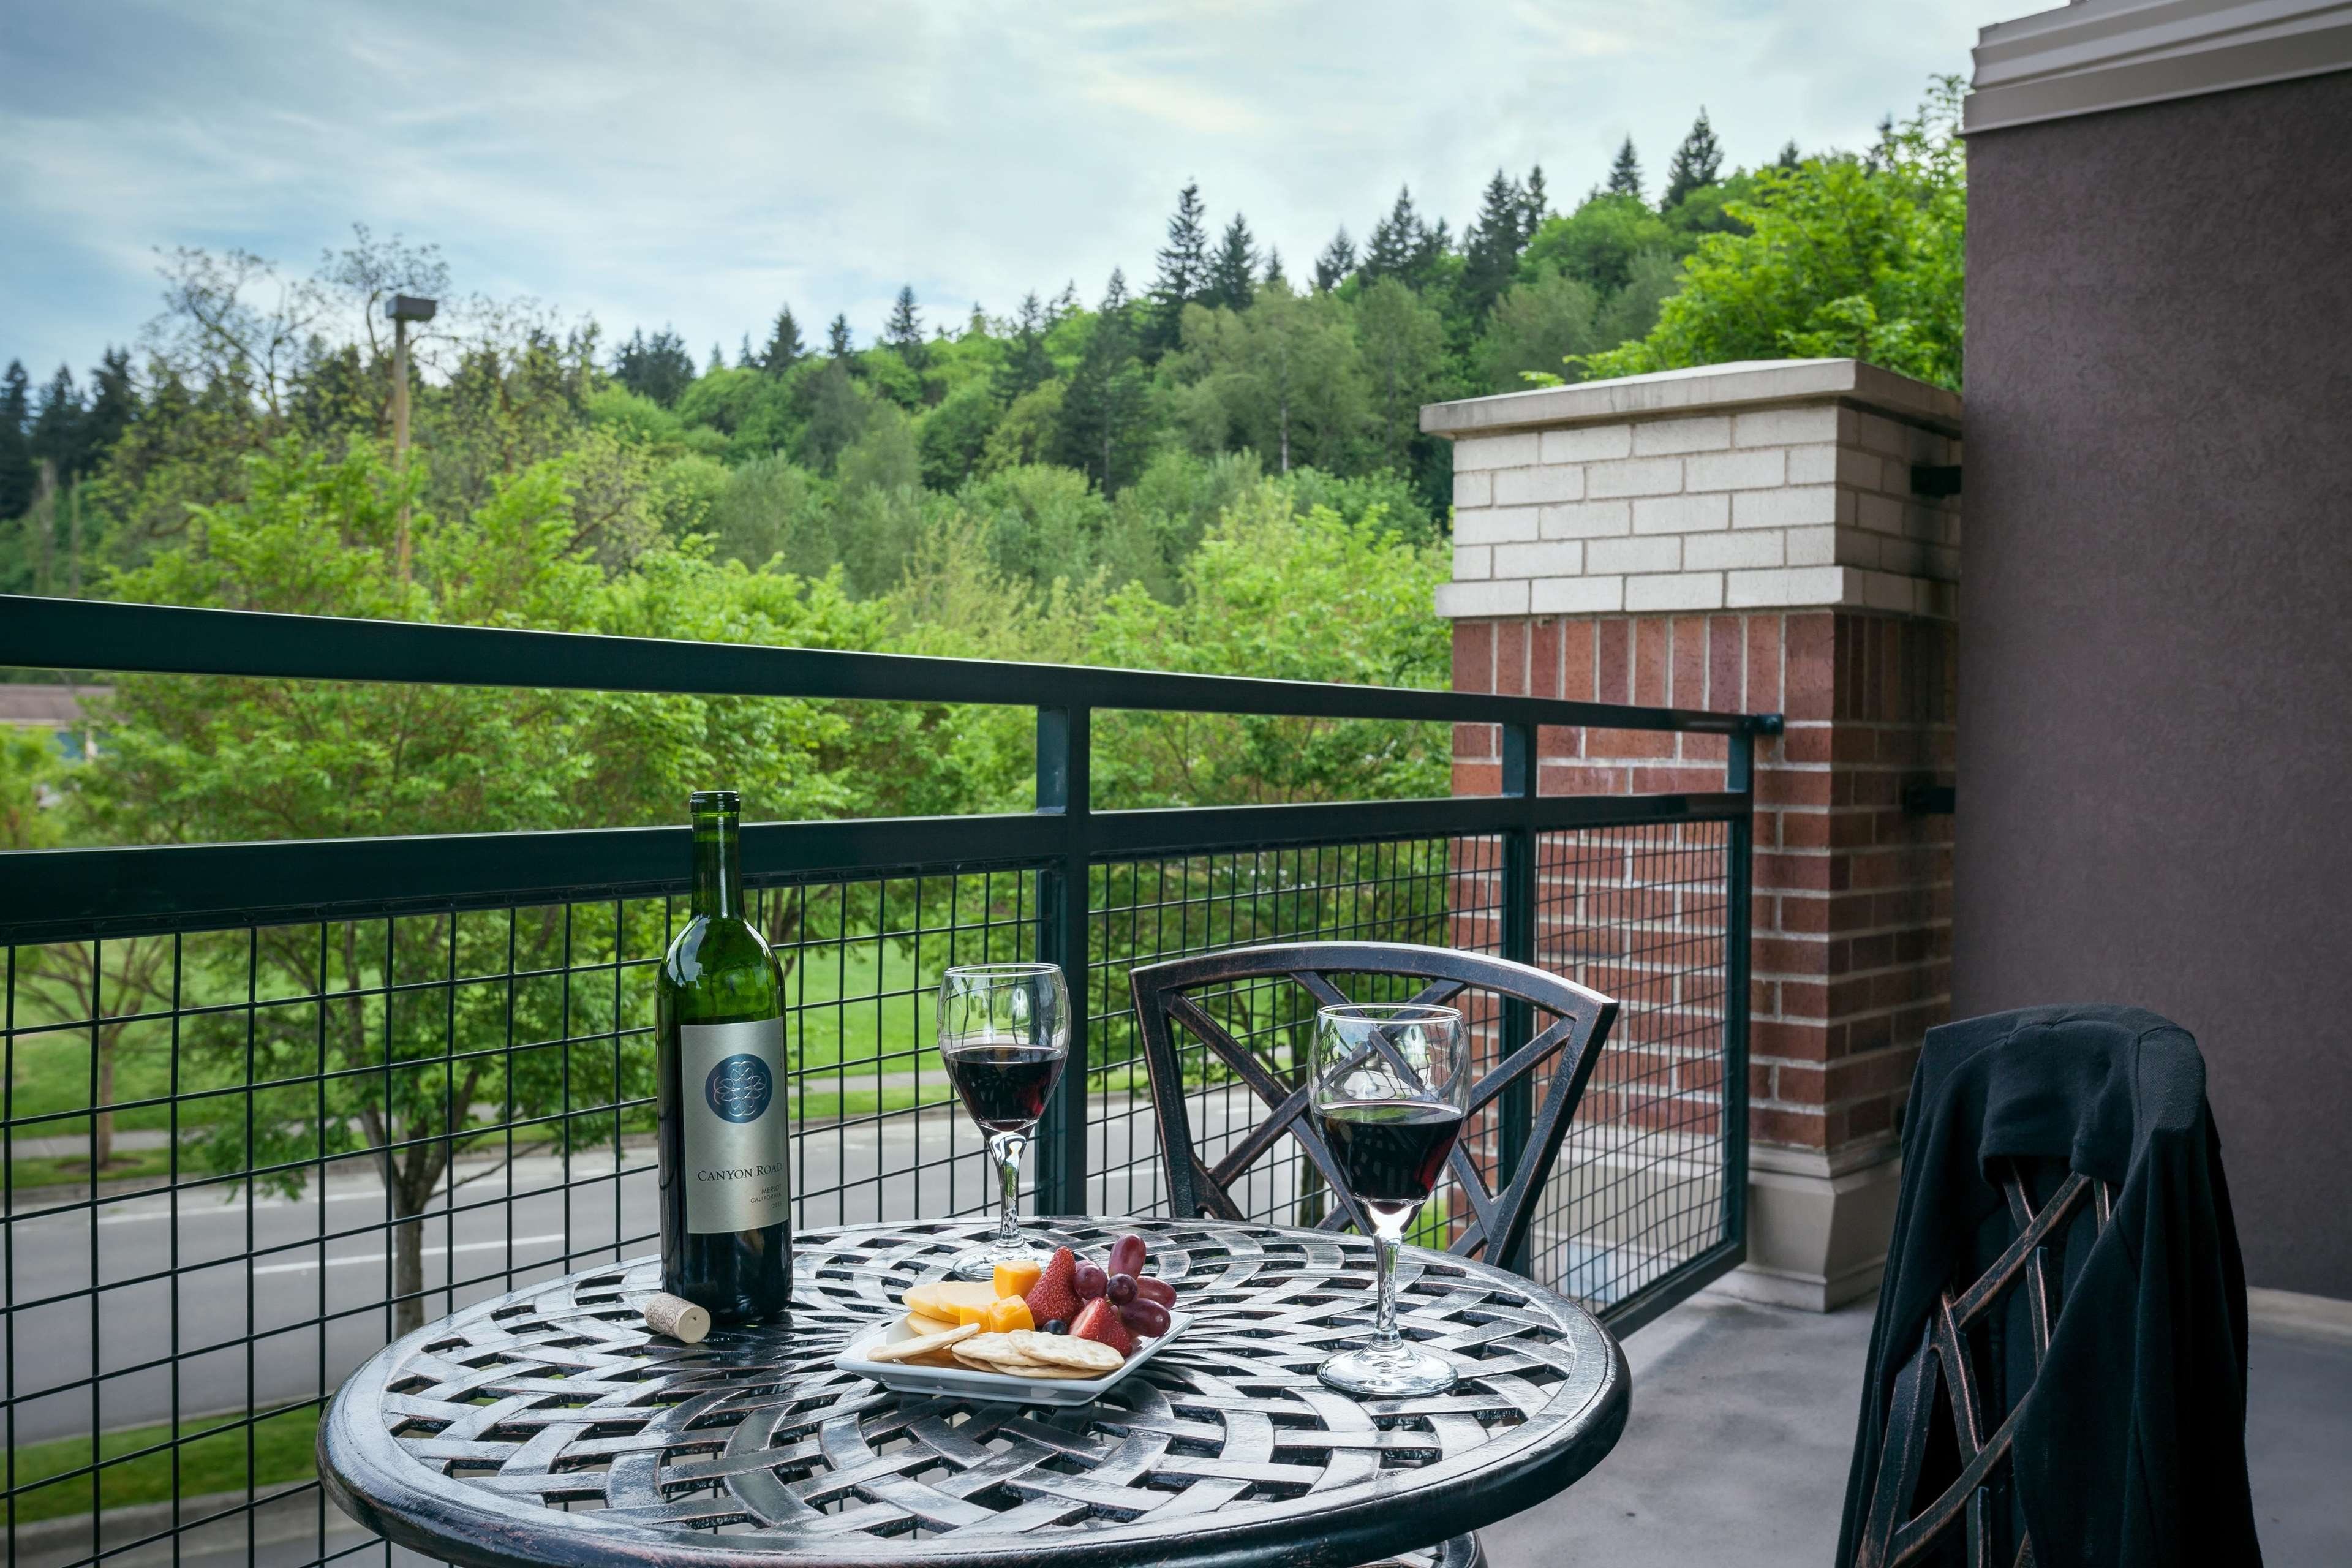 Hilton Garden Inn Seattle Issaquah Coupons Issaquah Wa Near Me 8coupons